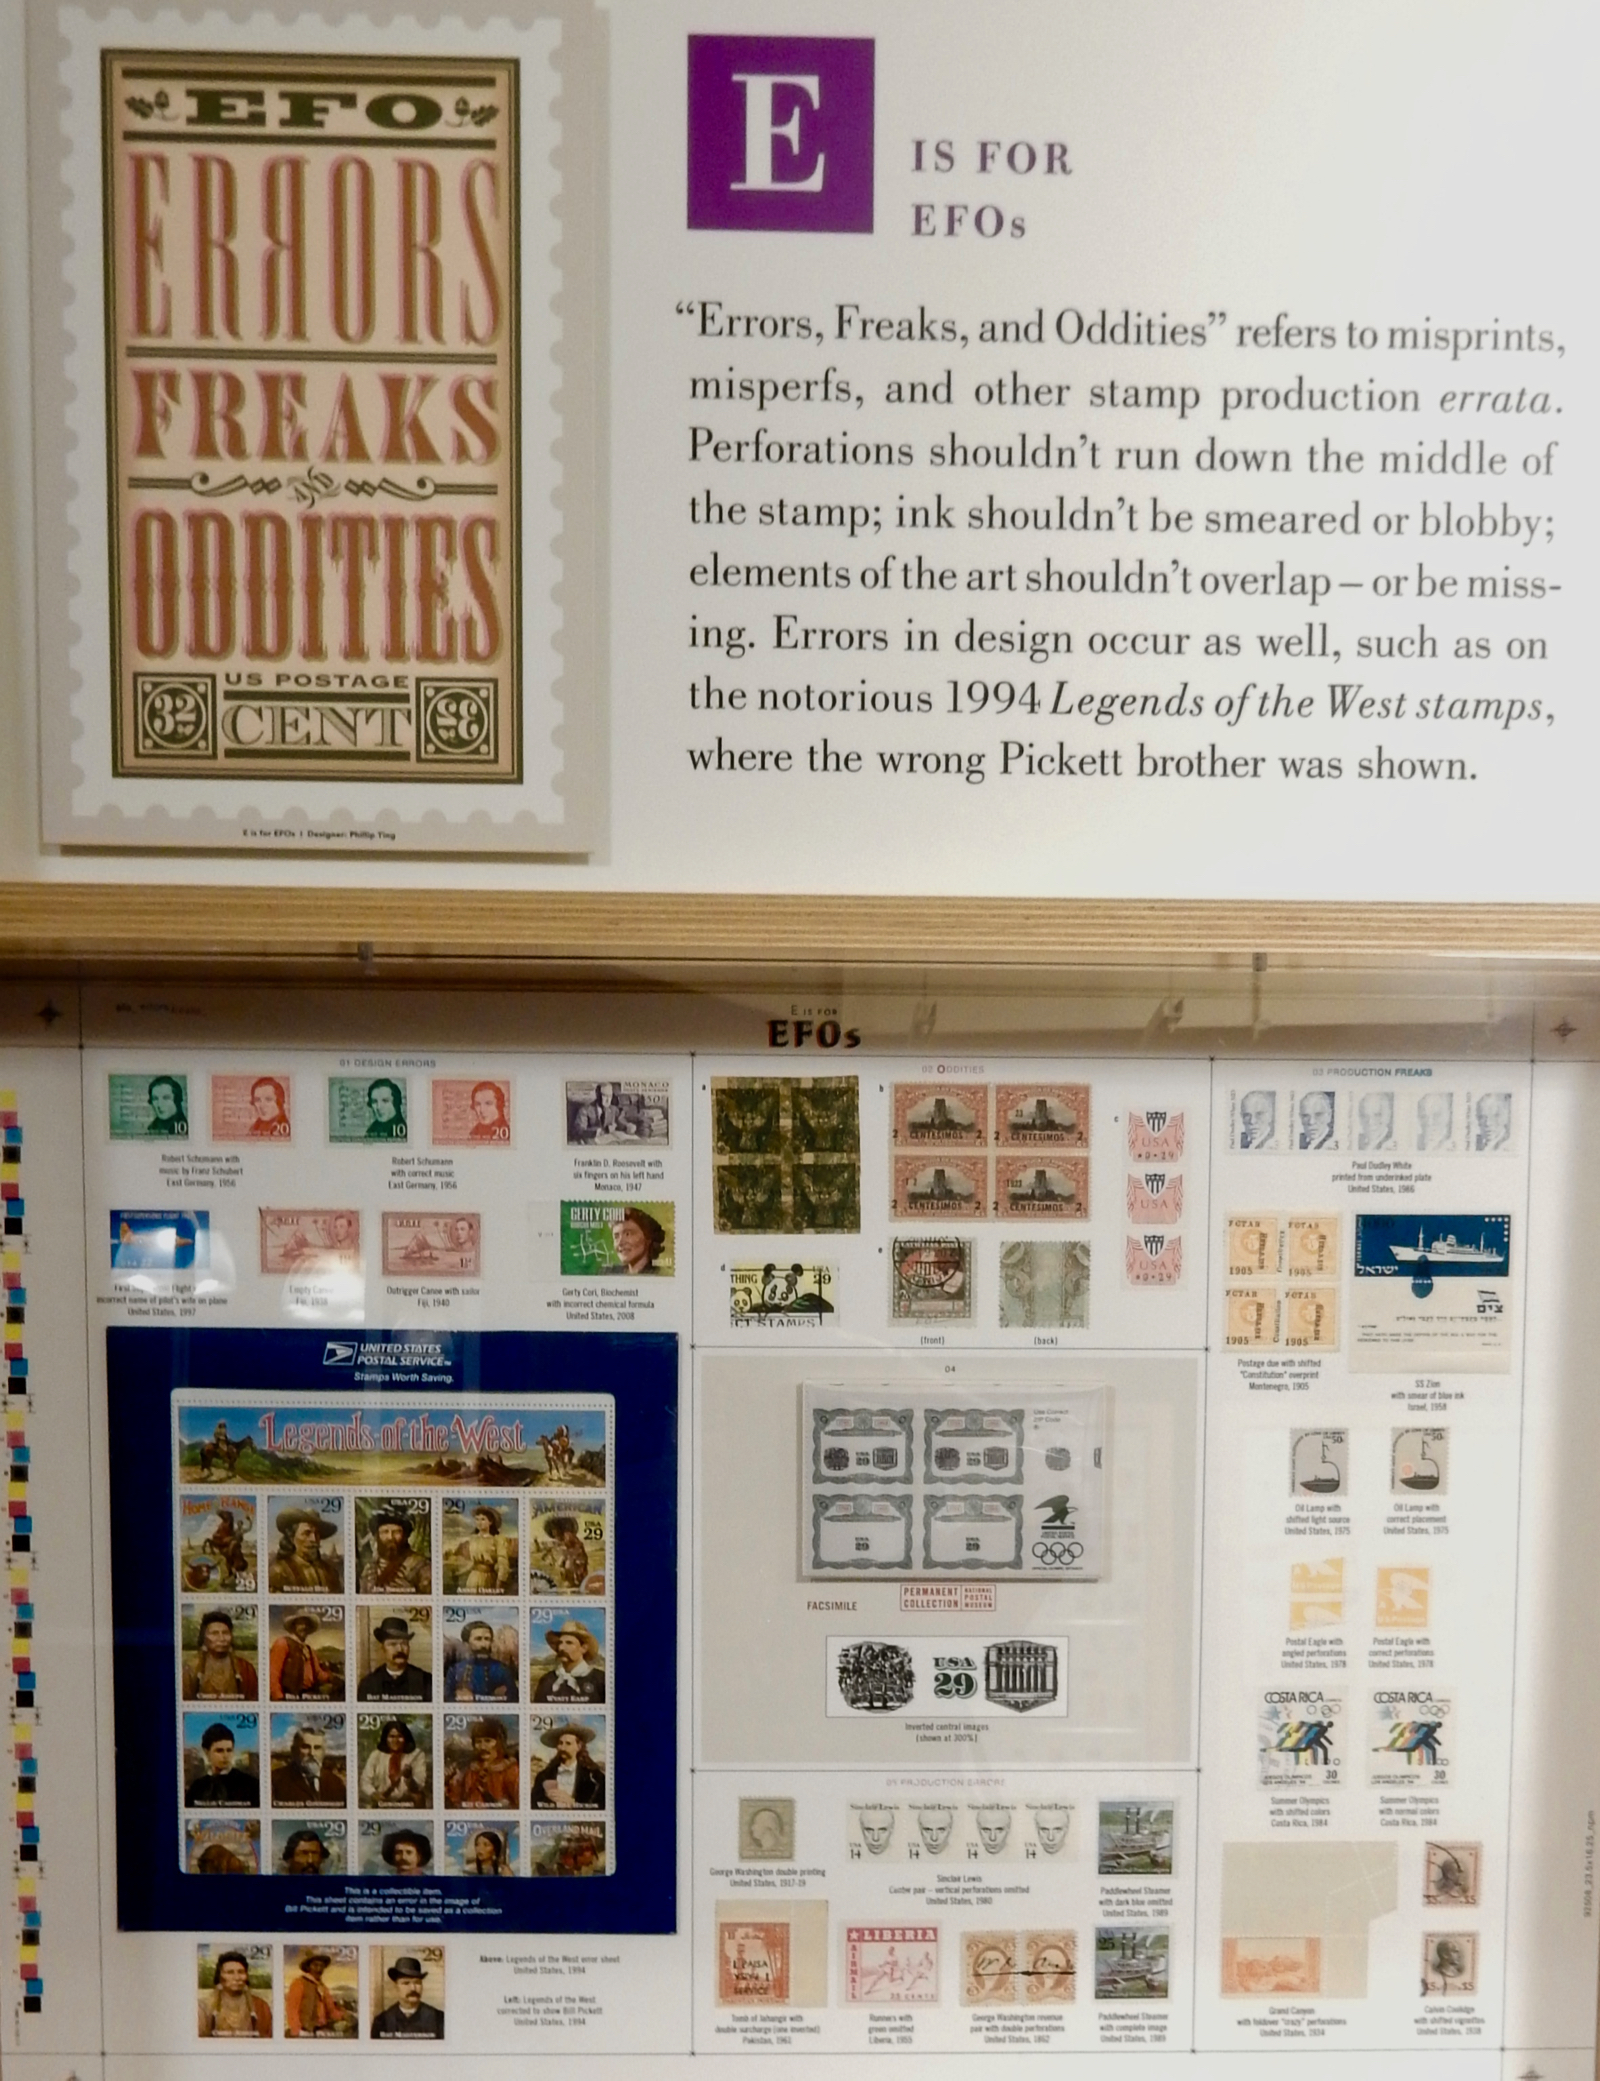 Errors Freaks and Oddities Stamps American Philatelic Society Headquarters at the Match Factory, Bellefonte PA